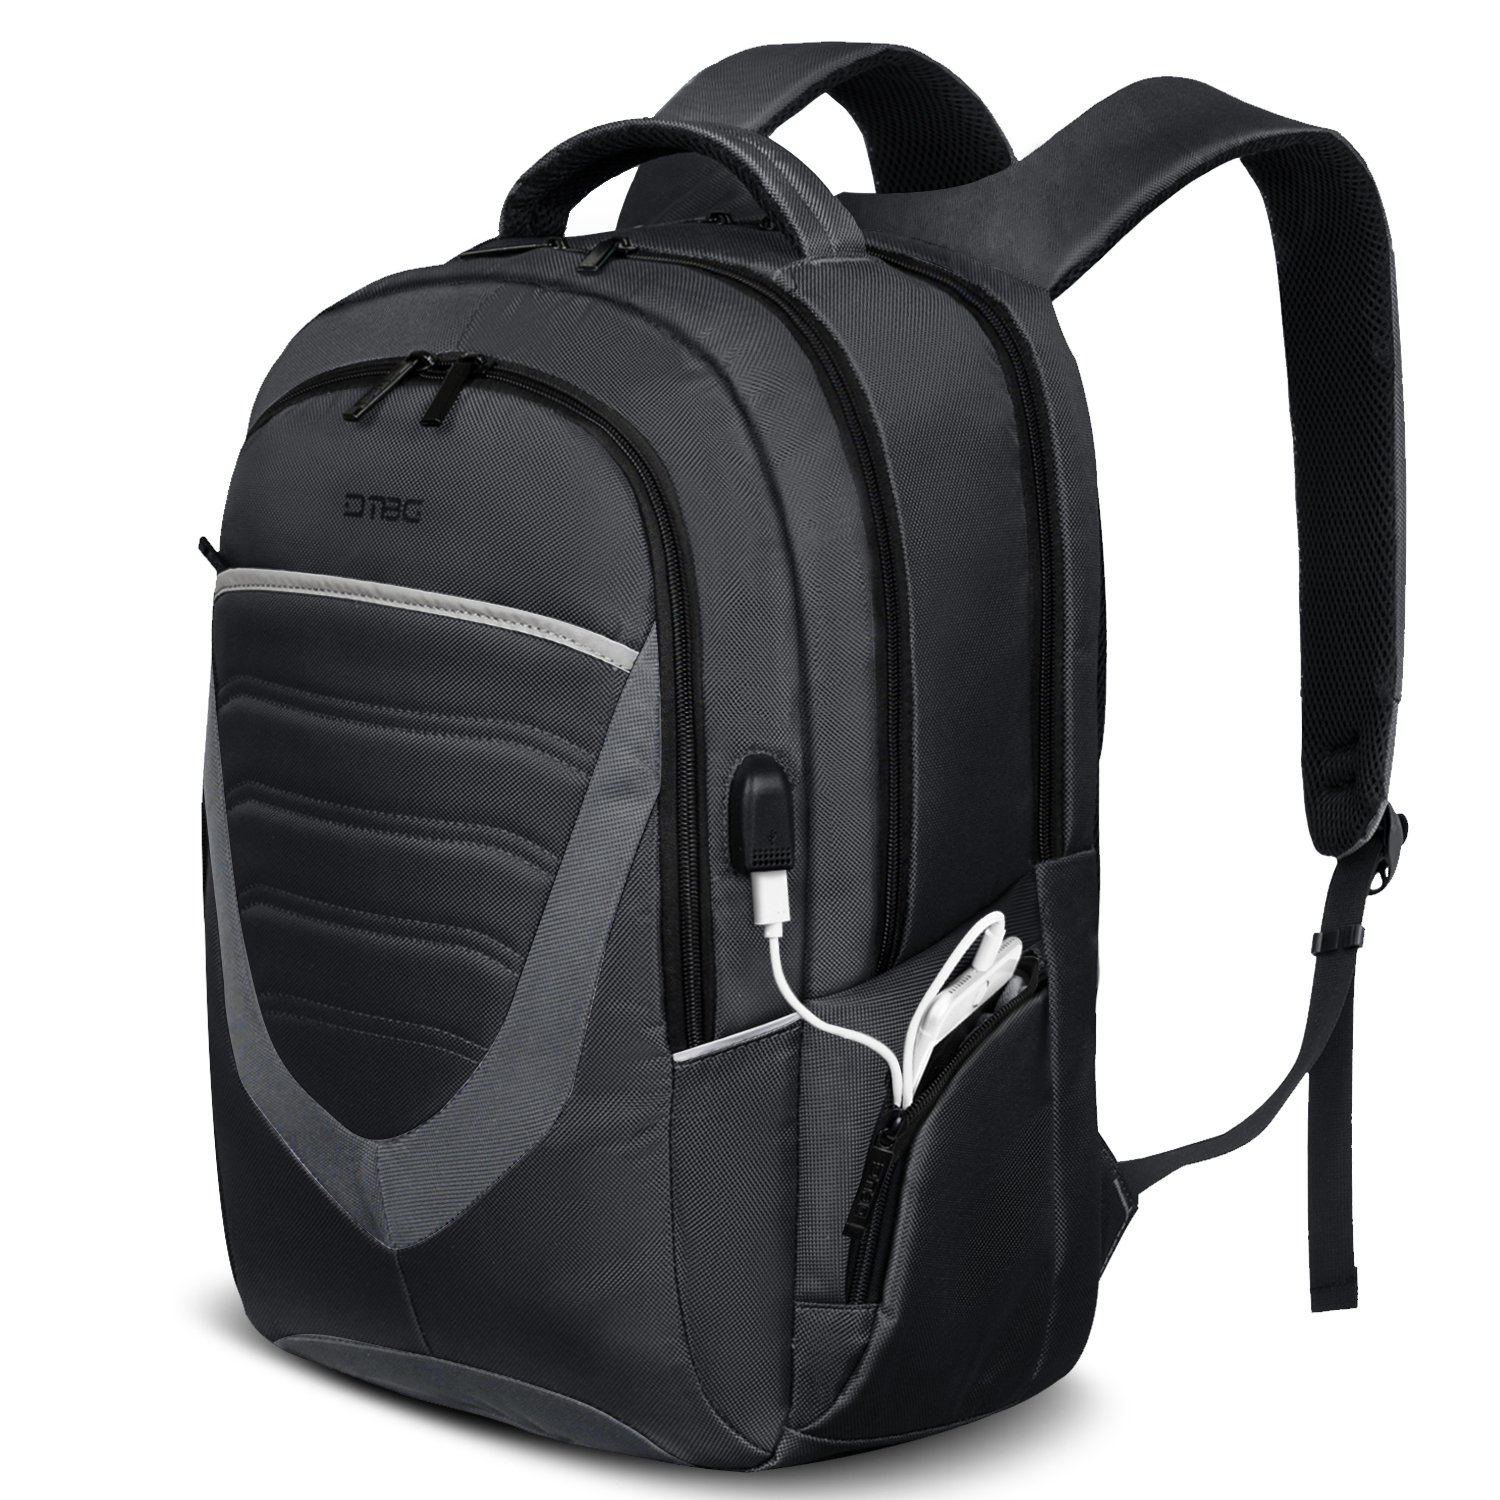 17.3 Inch Laptop Backpack with USB Charging Port,DTBG Durable Travel Business Backpack for Men / Women, College Daypack School Bag fits 17 - 17.3 Inch Laptop / Notebook / Macbook Computers,Black